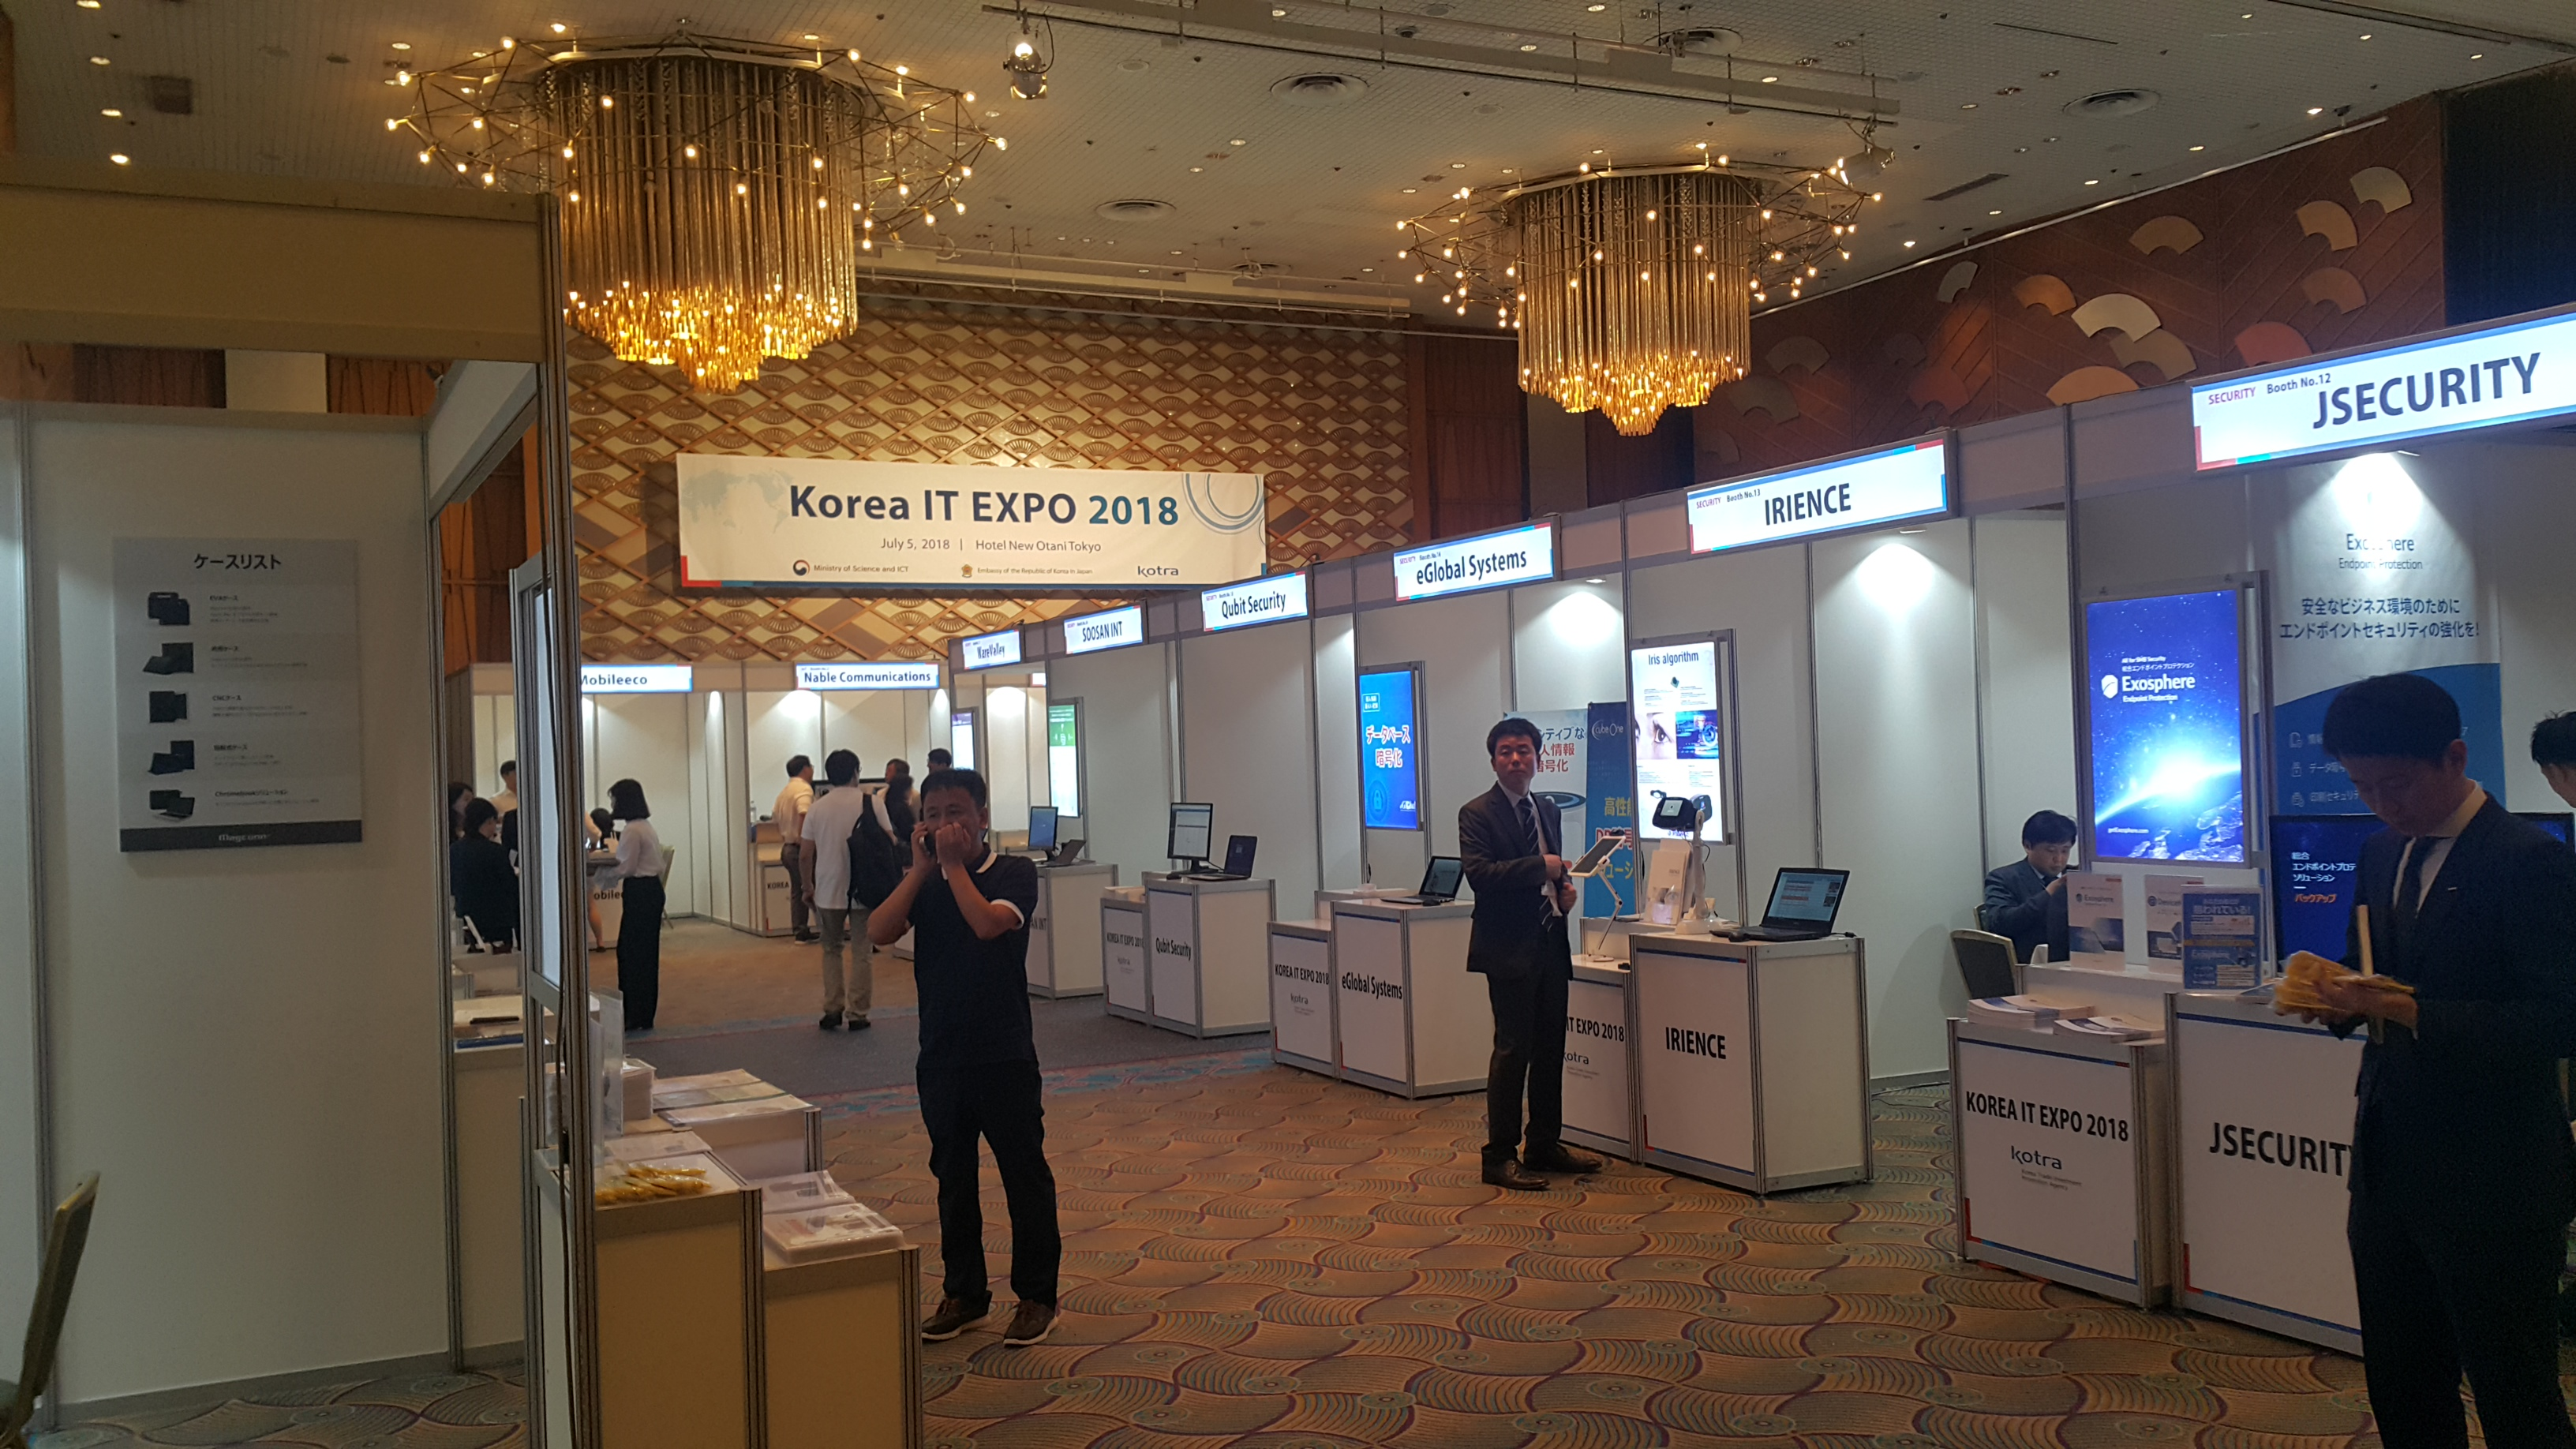 Qubit Security「韓国IT EXPO 2018」に、出展